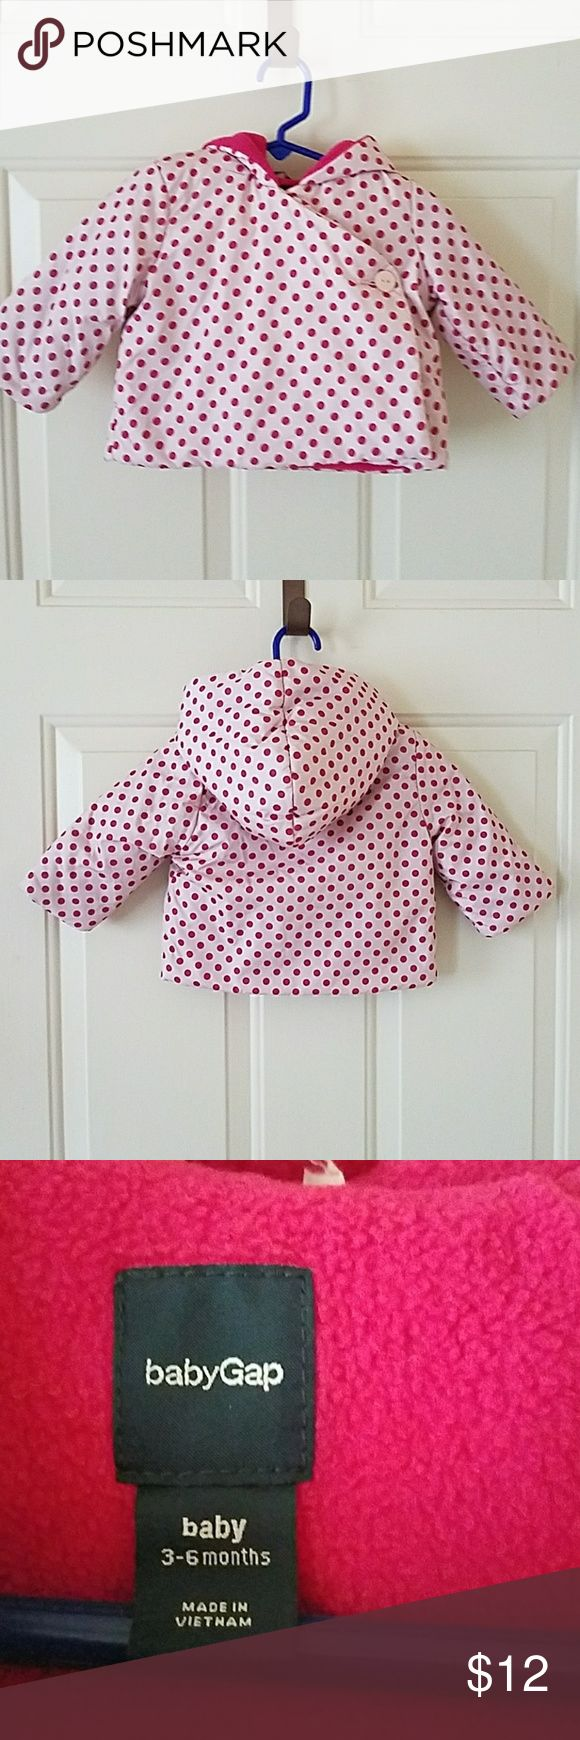 Pink Polka dot puffy jacket 3 to 6 months Adorable jacket with hoodie in light pink with dark pink polka dots. babyGap Jackets & Coats Puffers